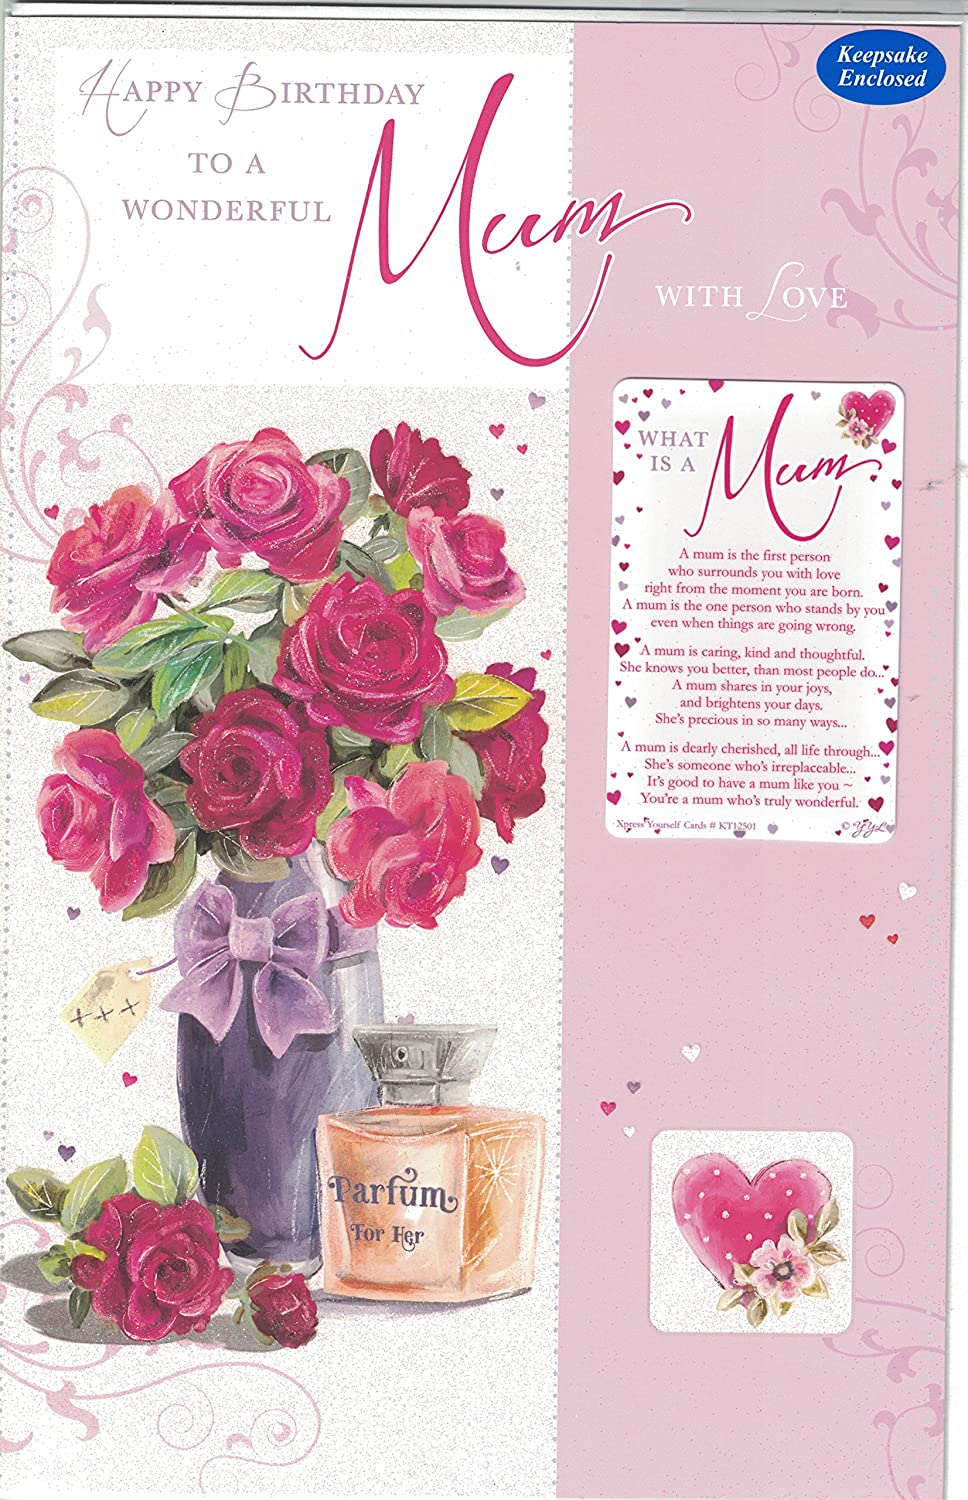 OPEN BIRTHDAY EXTRA LARGE CARD WITH LOVELY VERSES 8 PAGE INSERT